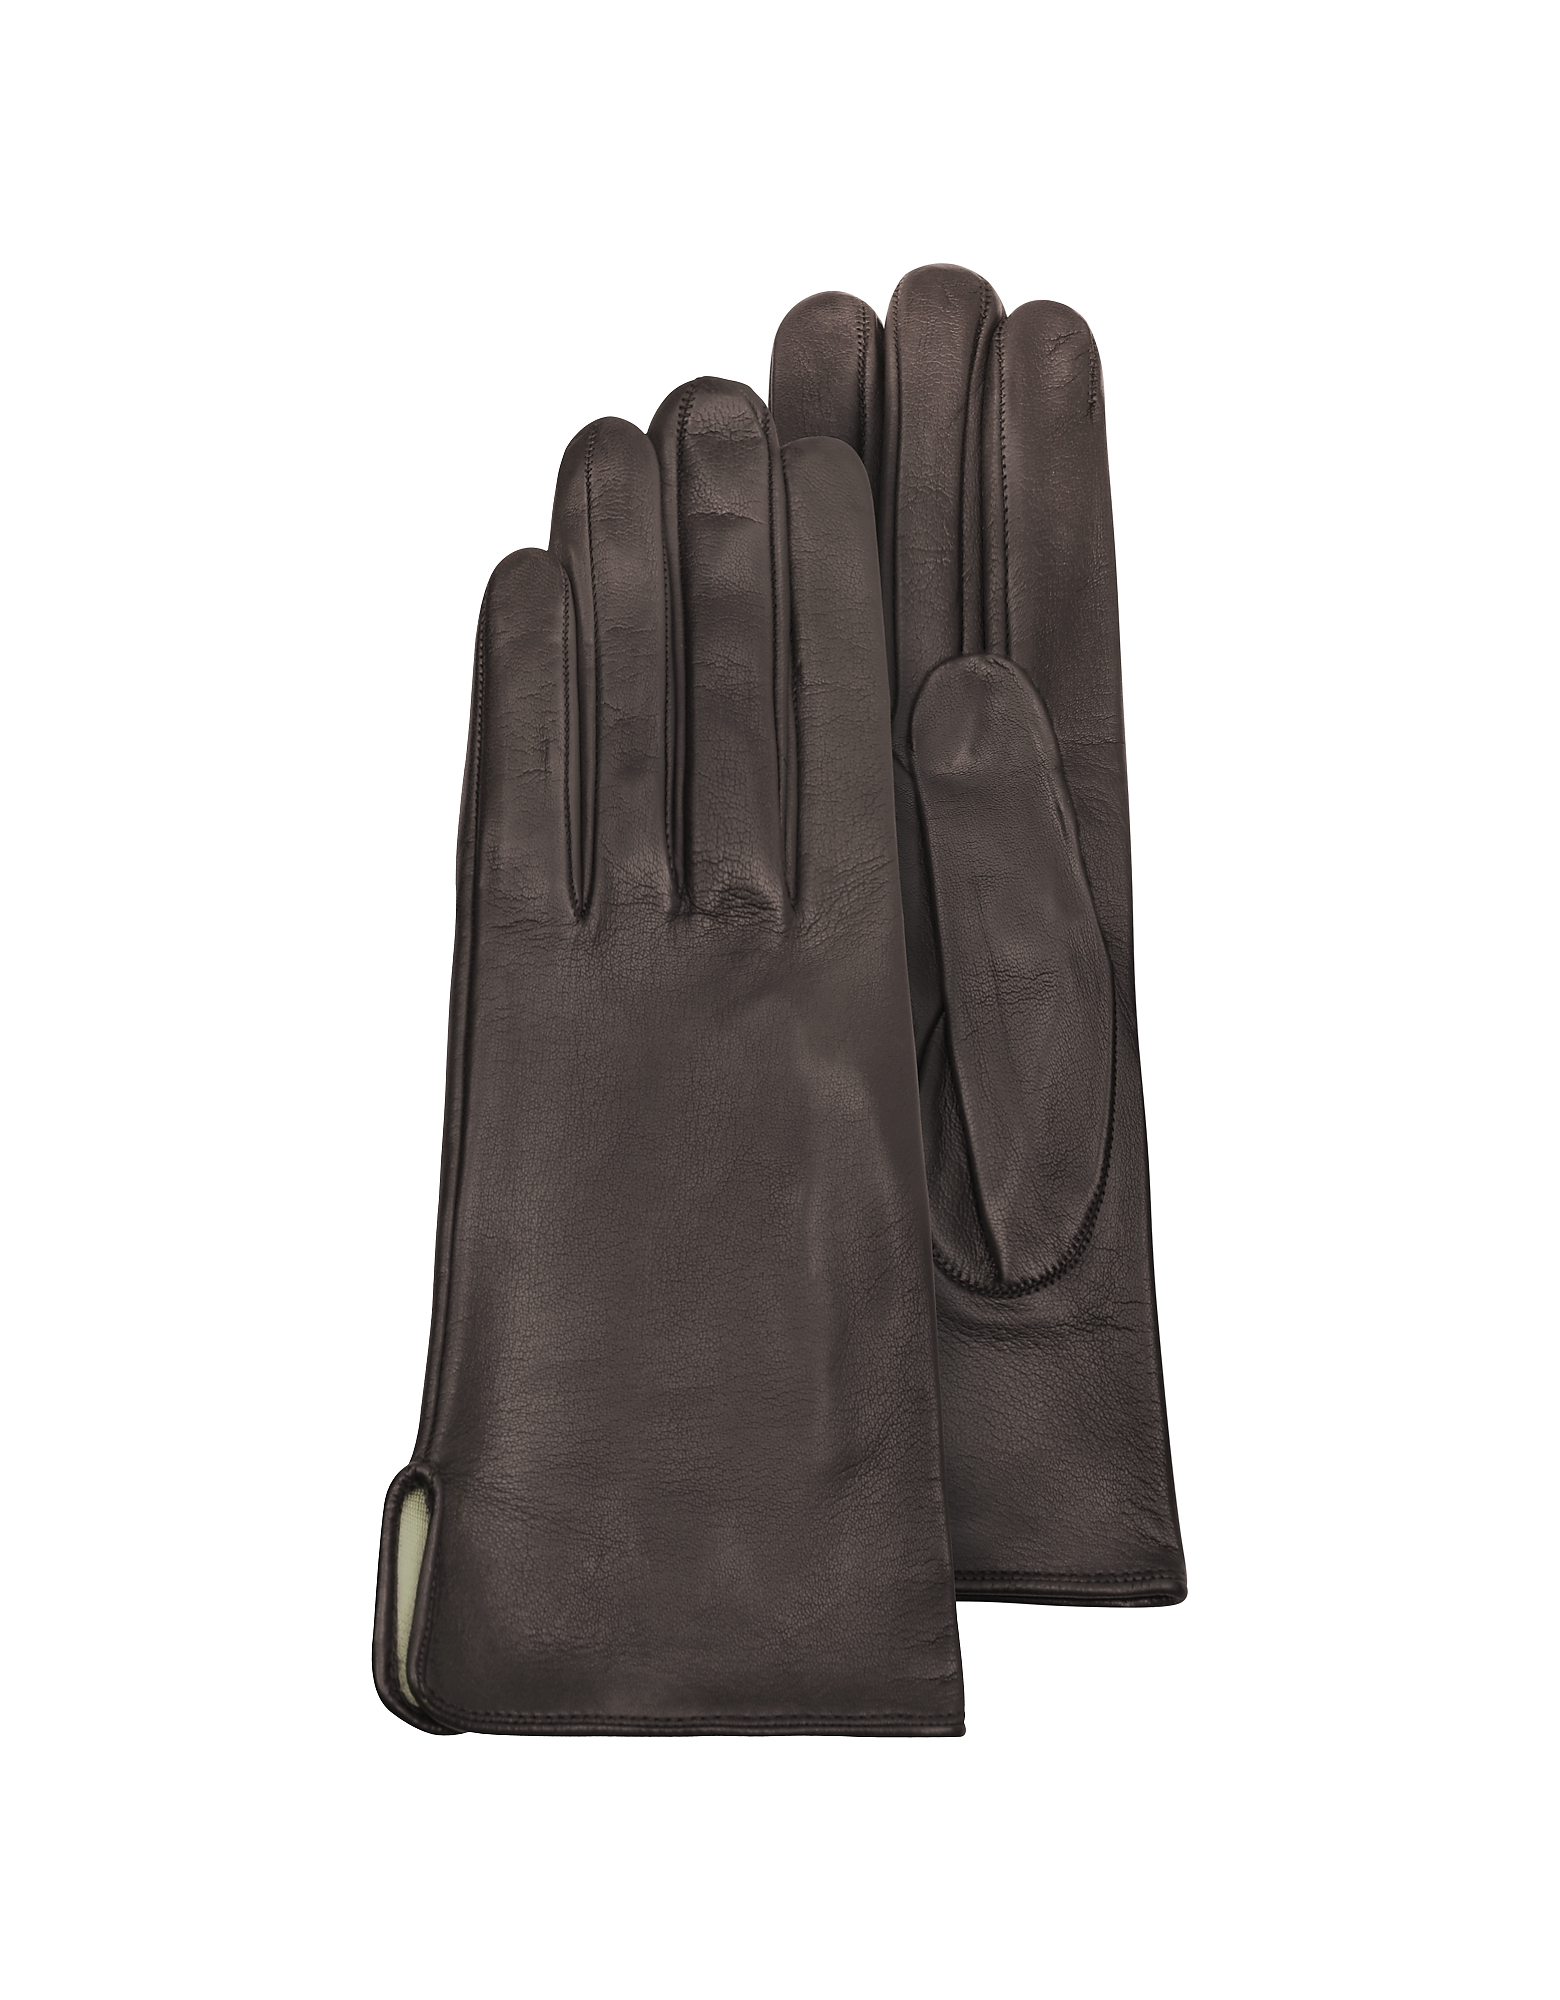 Women's Brown Calf Leather Gloves w/ Silk Lining